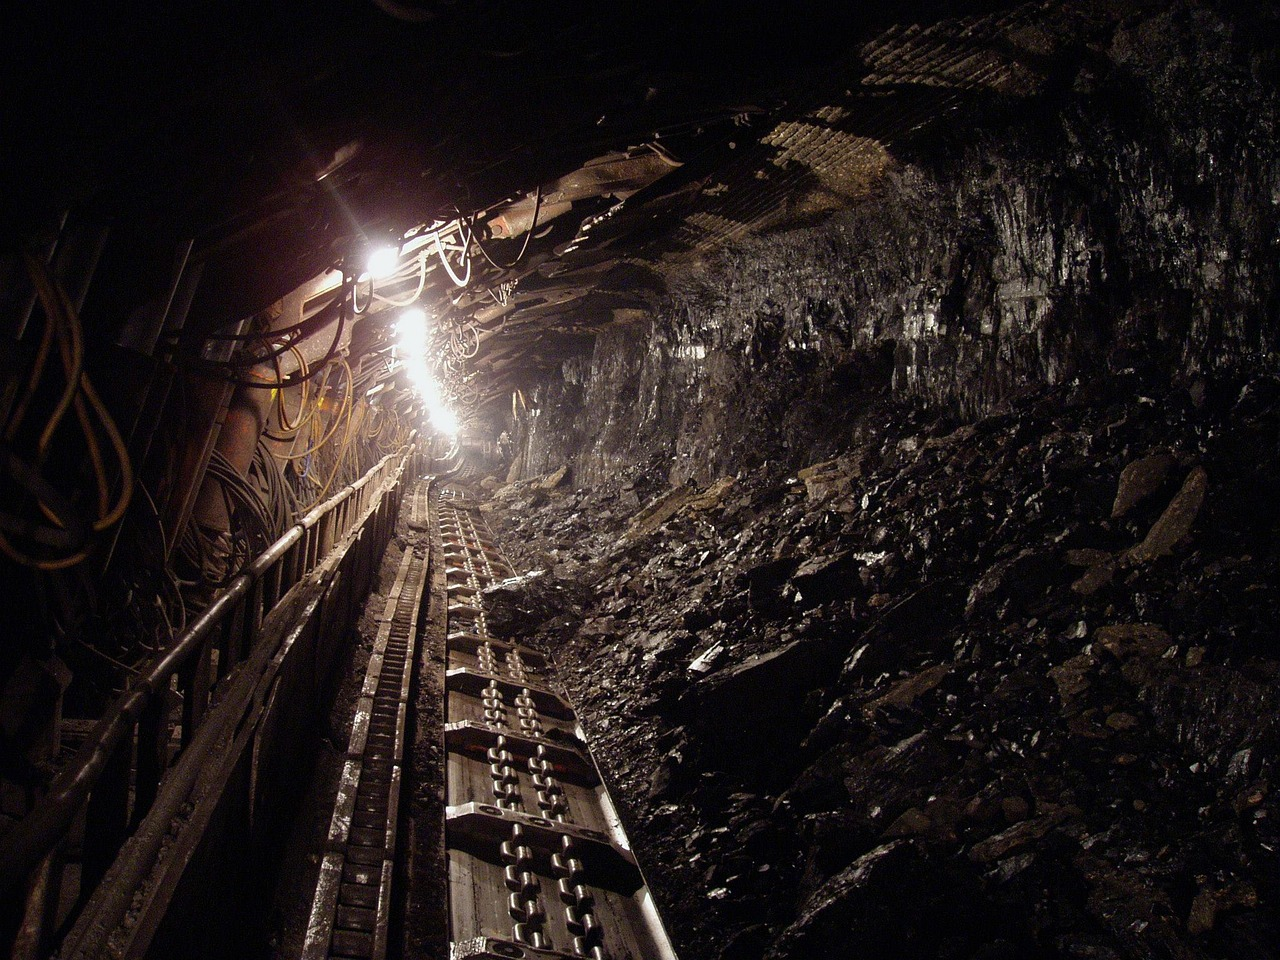 Poland proposes coal mine expansion while lawsuit challenges largest European coal plant